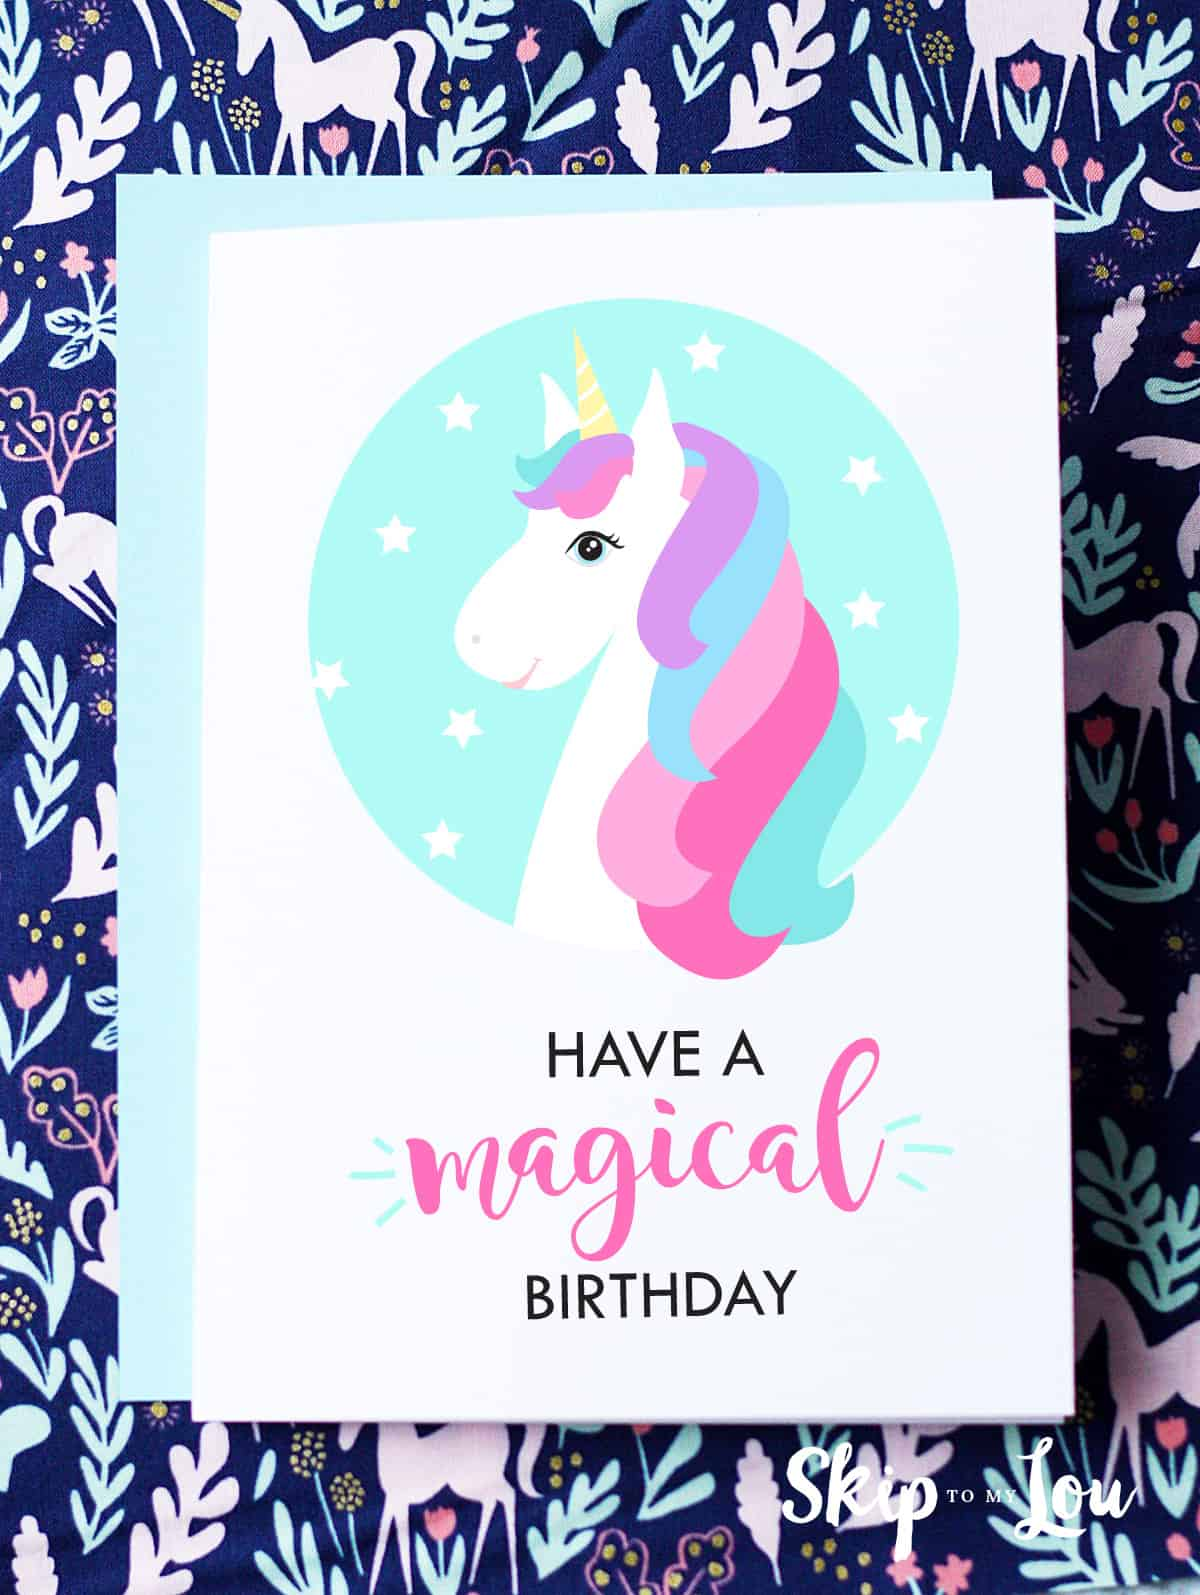 It's just a photo of Peaceful Happy Birthday Card Printable Free